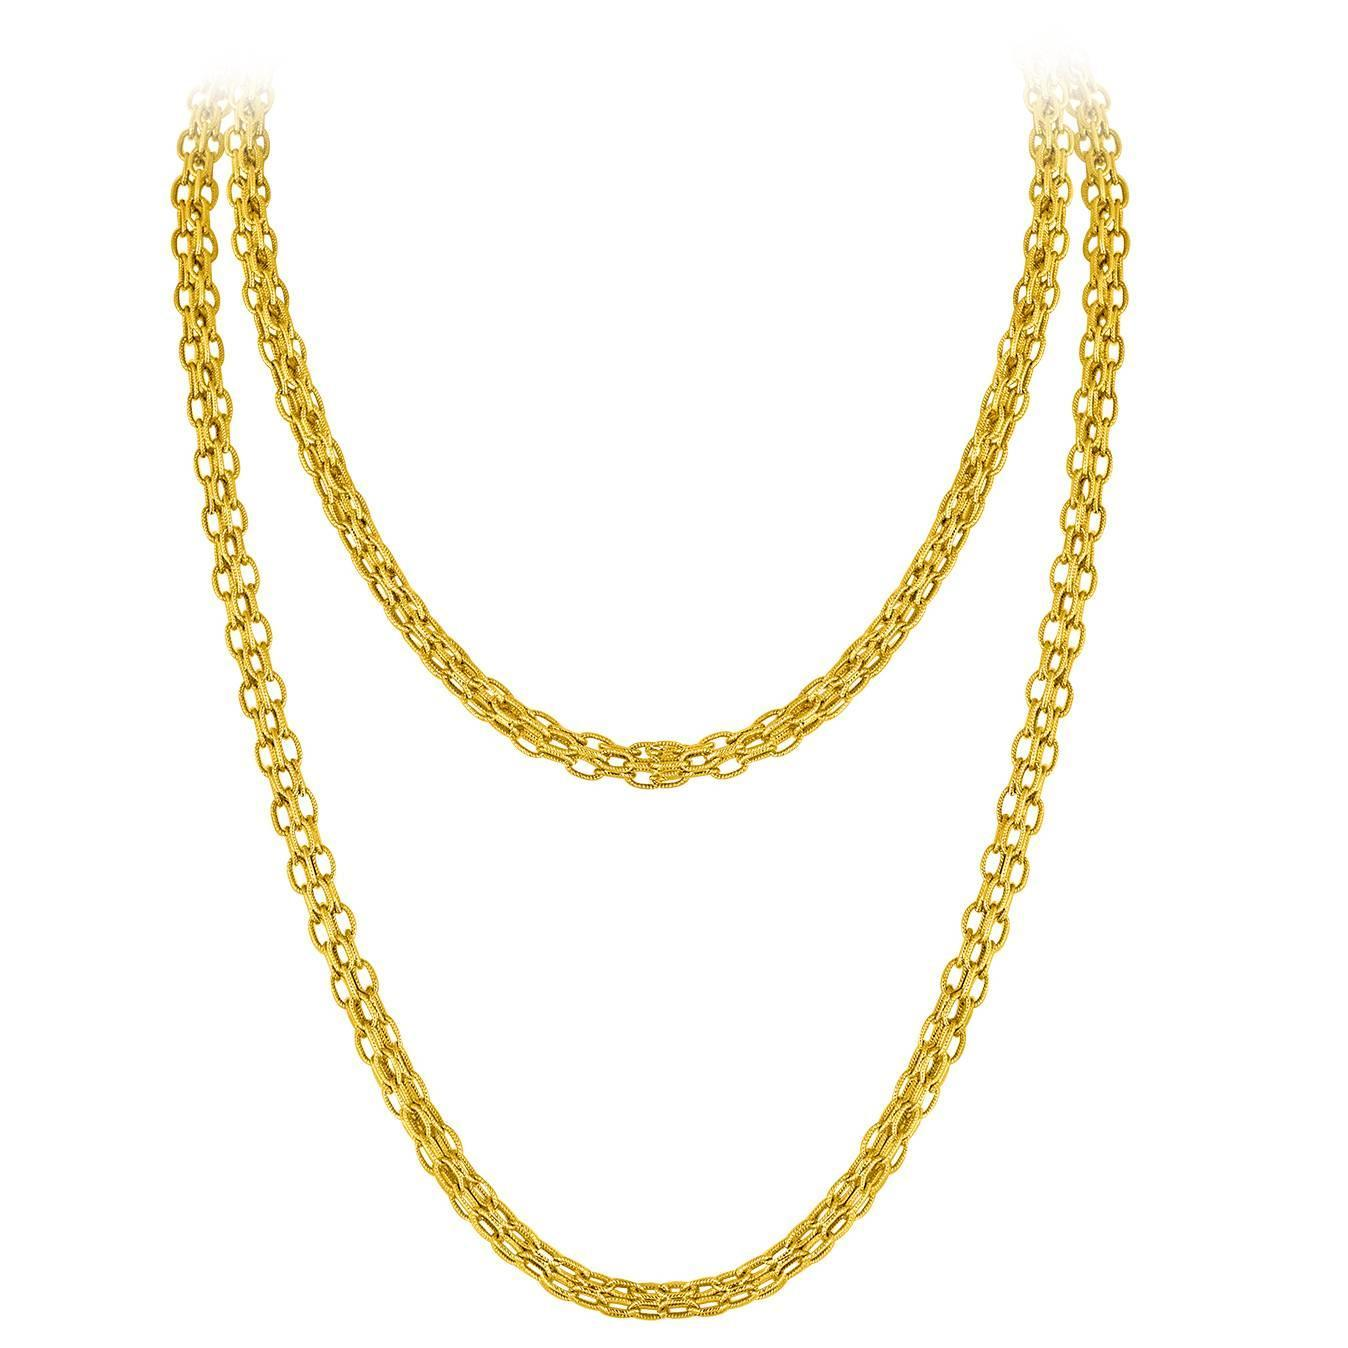 omega estate solid necklaces diamond mesh braided chain italy rgfdbxx for gold pendants wholesale product necklace from dhgate